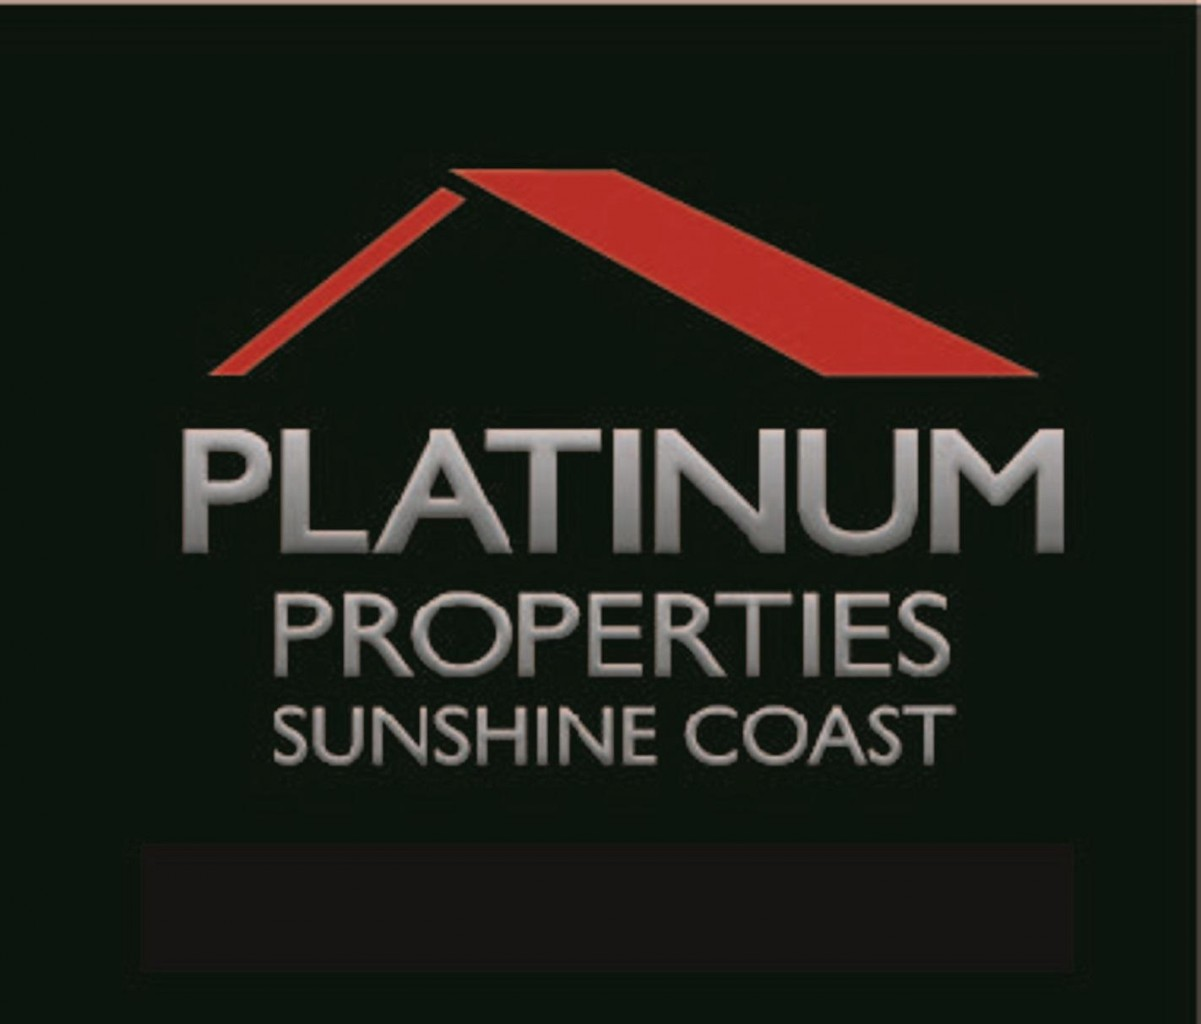 Platinum Properties Sunshine Coast